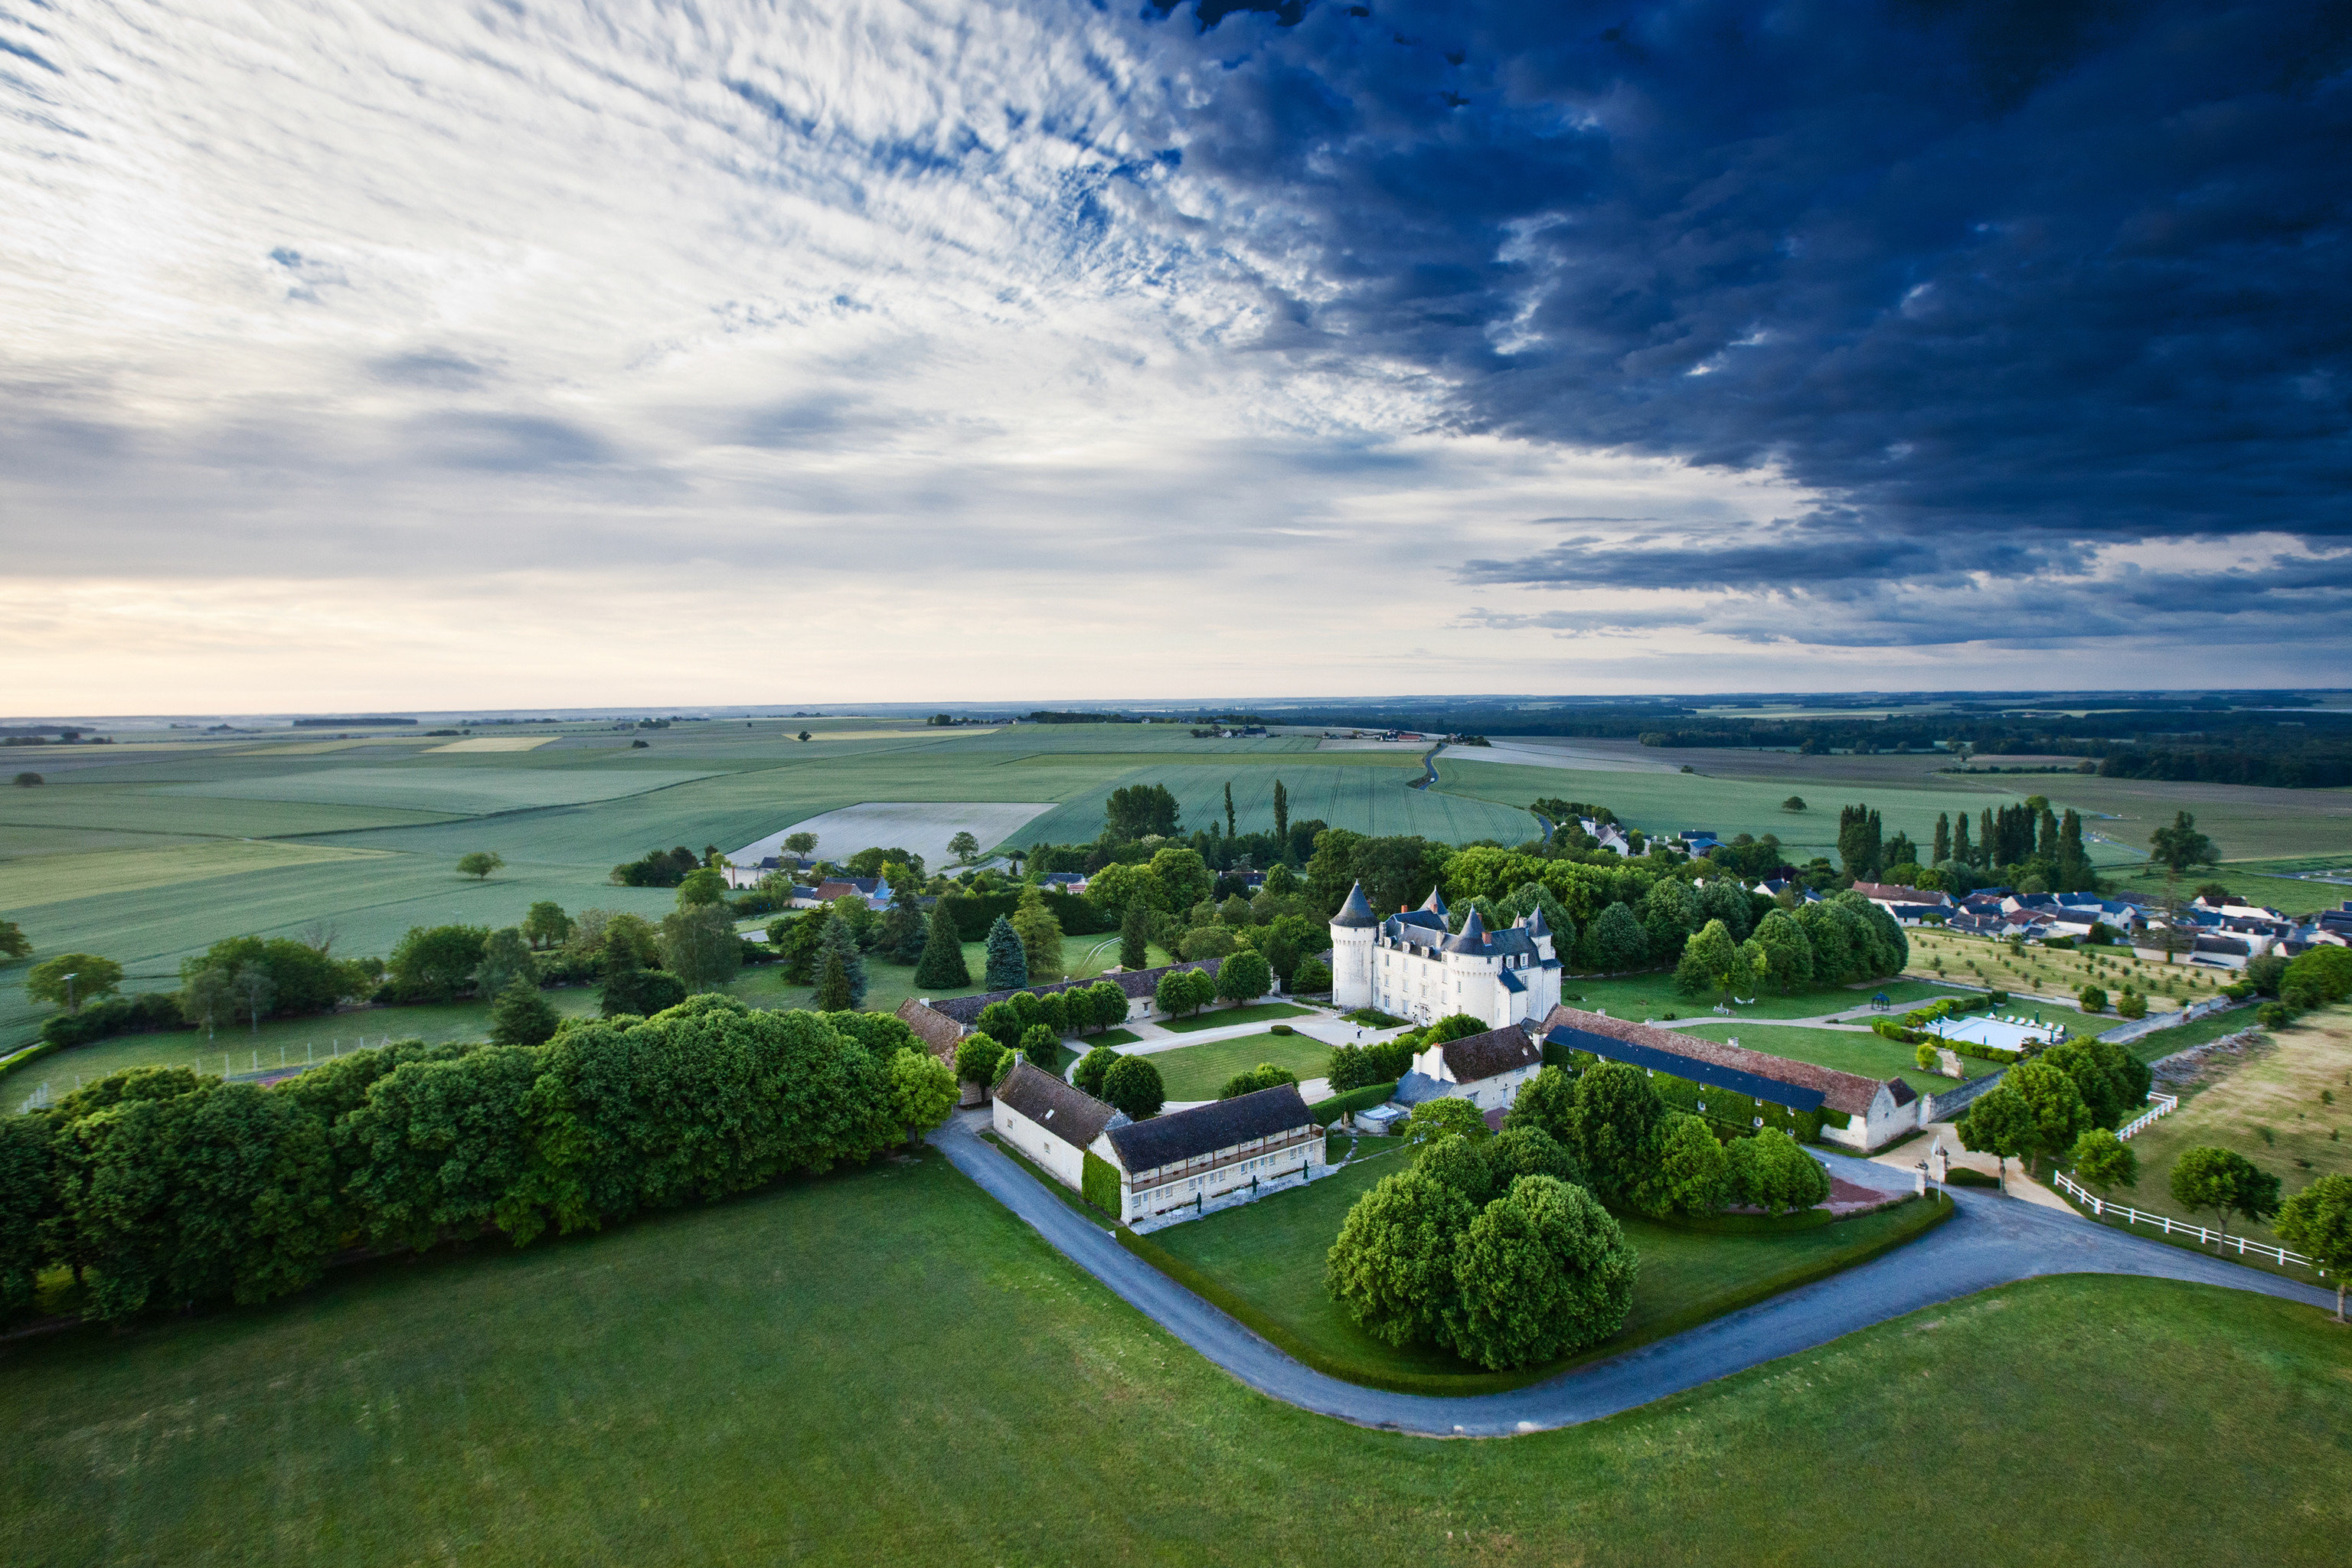 grass sky aerial photography horizon photography cloud Nature bird's eye view residential area atmosphere of earth sport venue hill rural area landscape green Sea shore